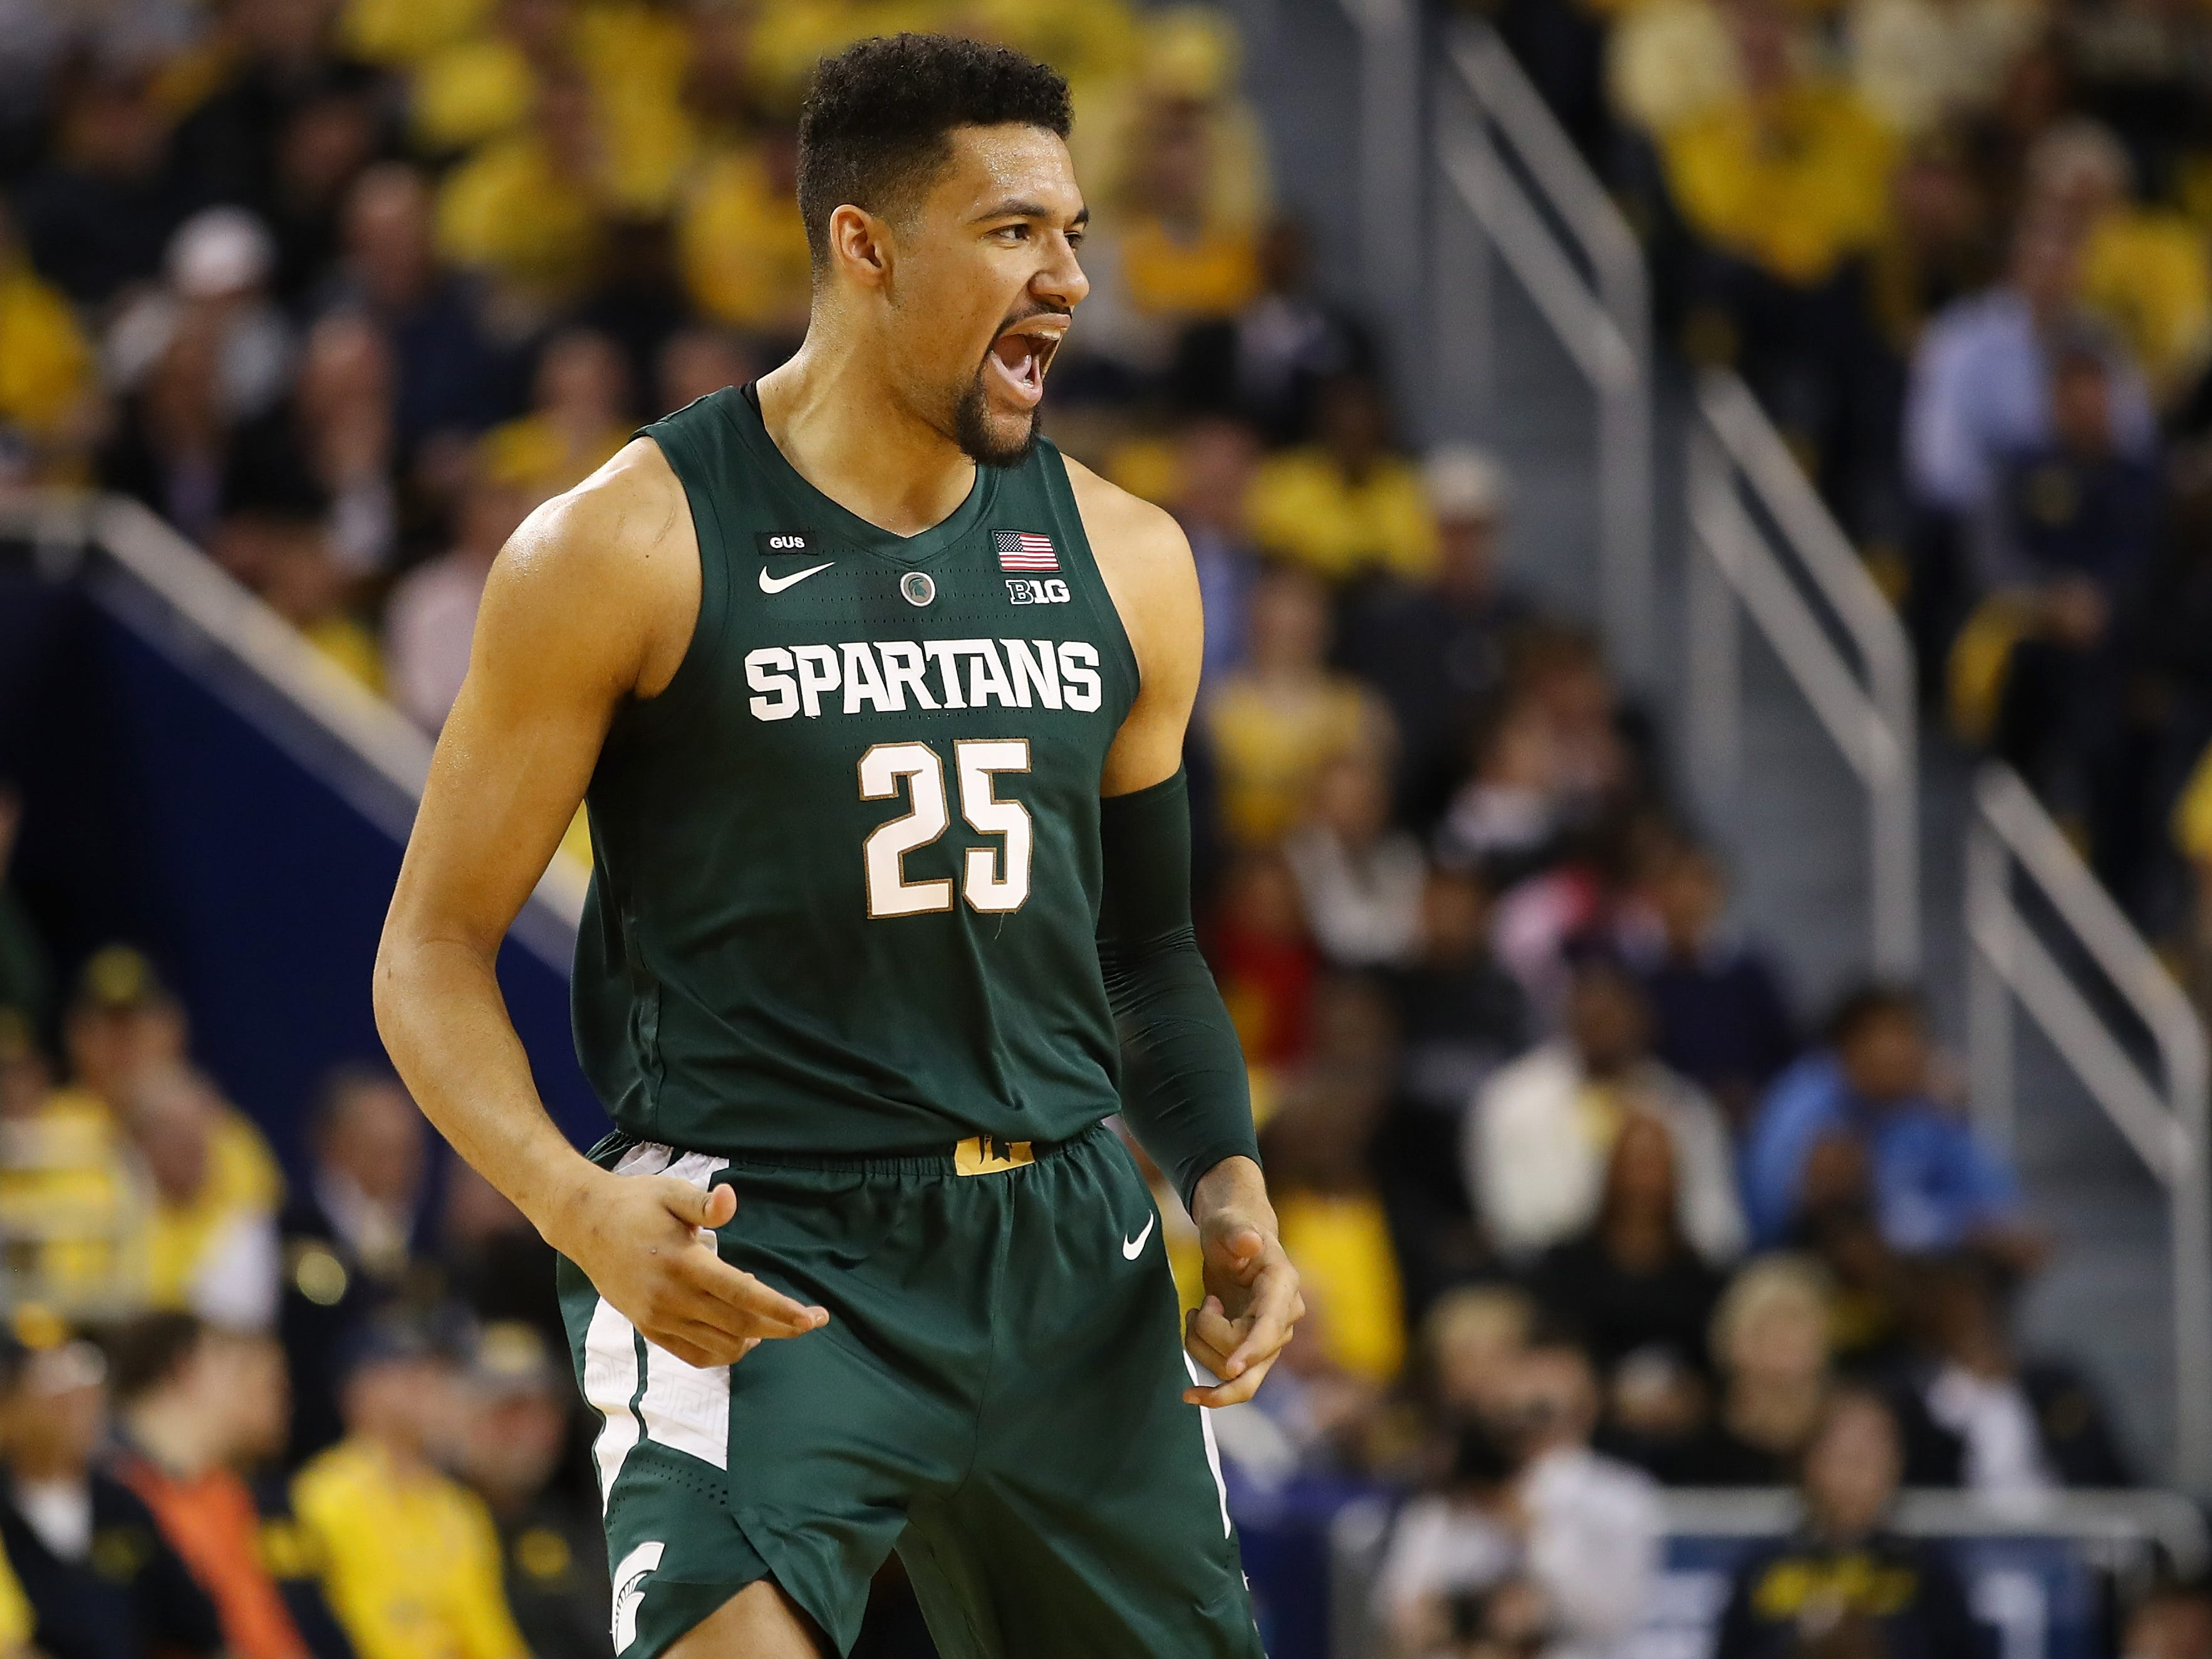 Michigan State's Kenny Goins reacts after a 3-point basket in the first half against Michigan at Crisler Center, Feb. 24, 2019 in Ann Arbor.